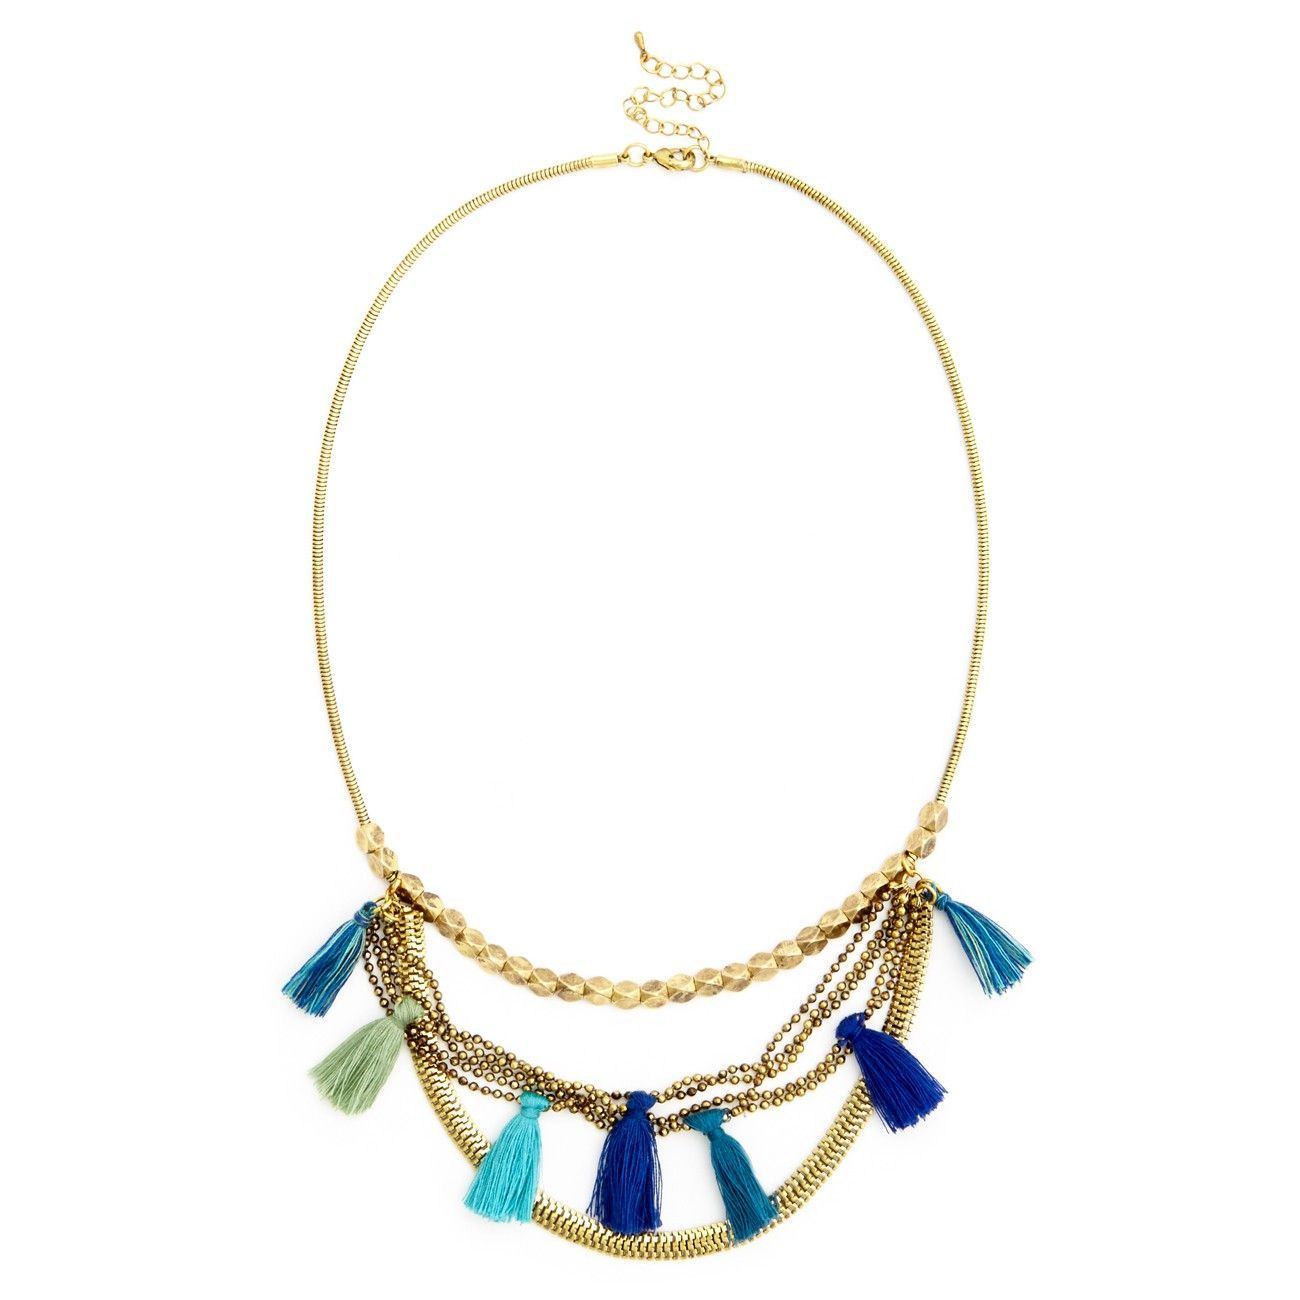 Sole Society Womens Beaded Thin Choker Necklace In Color: White Combo One Size From Sole Society w8FSGuL